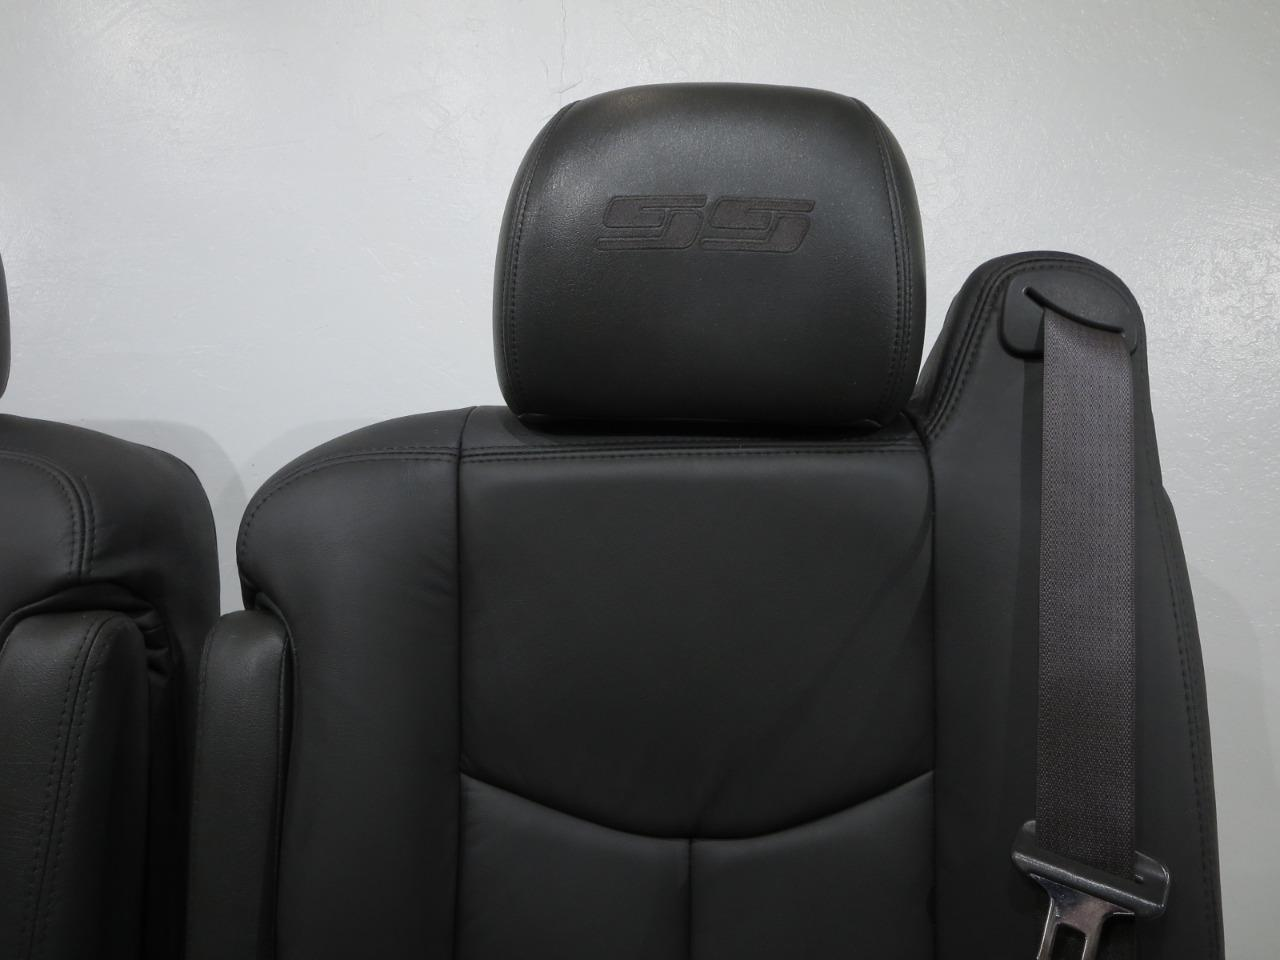 Chevy Silverado Replacement Seats >> Replacement Chevy Silverado Ss New Leather Oem Seats 2003 2004 2005